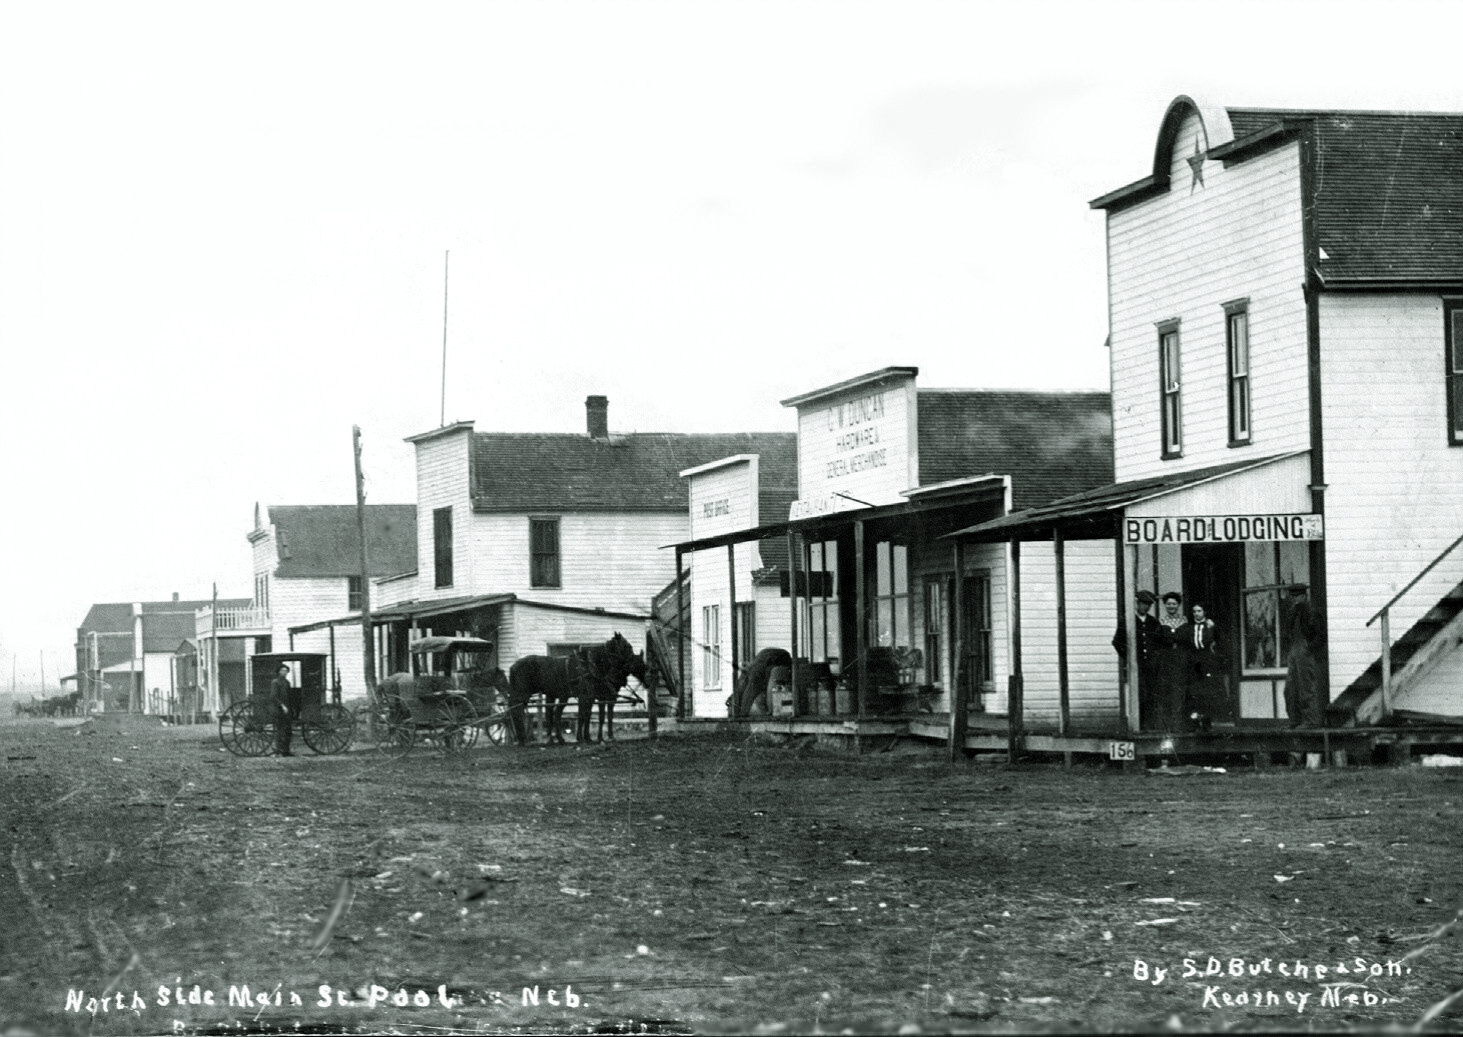 Downtown Poole, Nebraska, circa 1900. 📸 http://homepages.rootsweb.com/~stovpipe/Poole/PoolePhoto.html